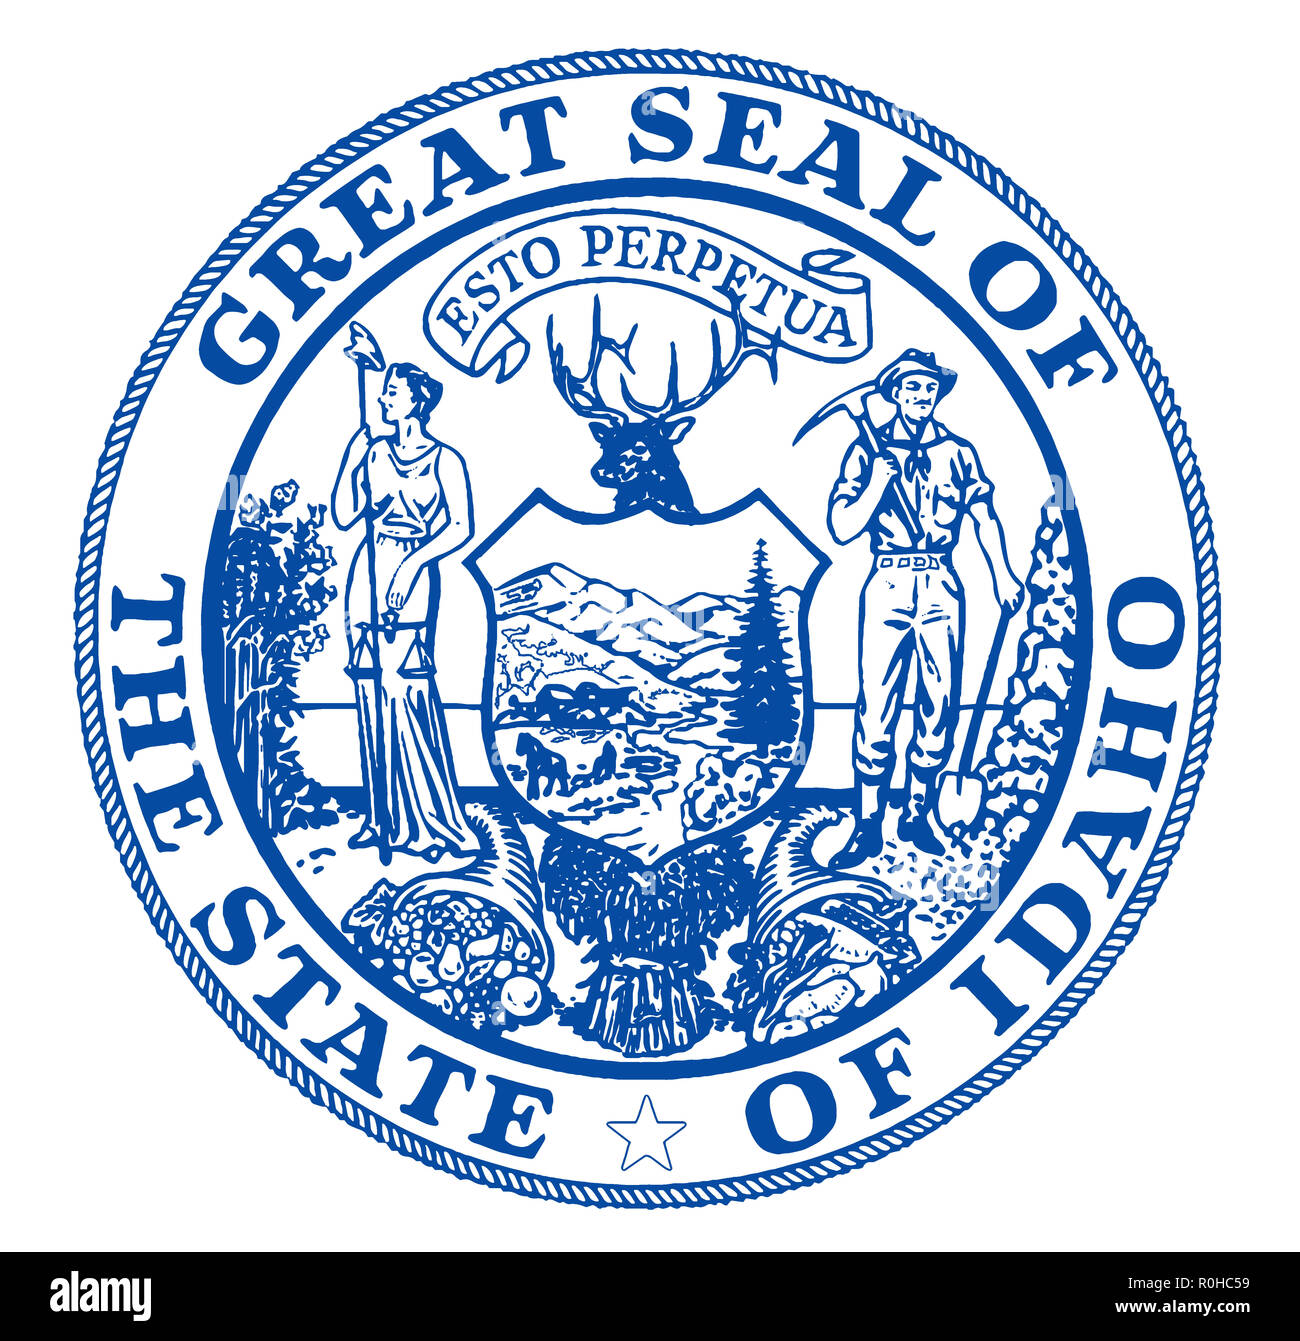 The state seal of the USA state of Idaho over a white background - Stock Image